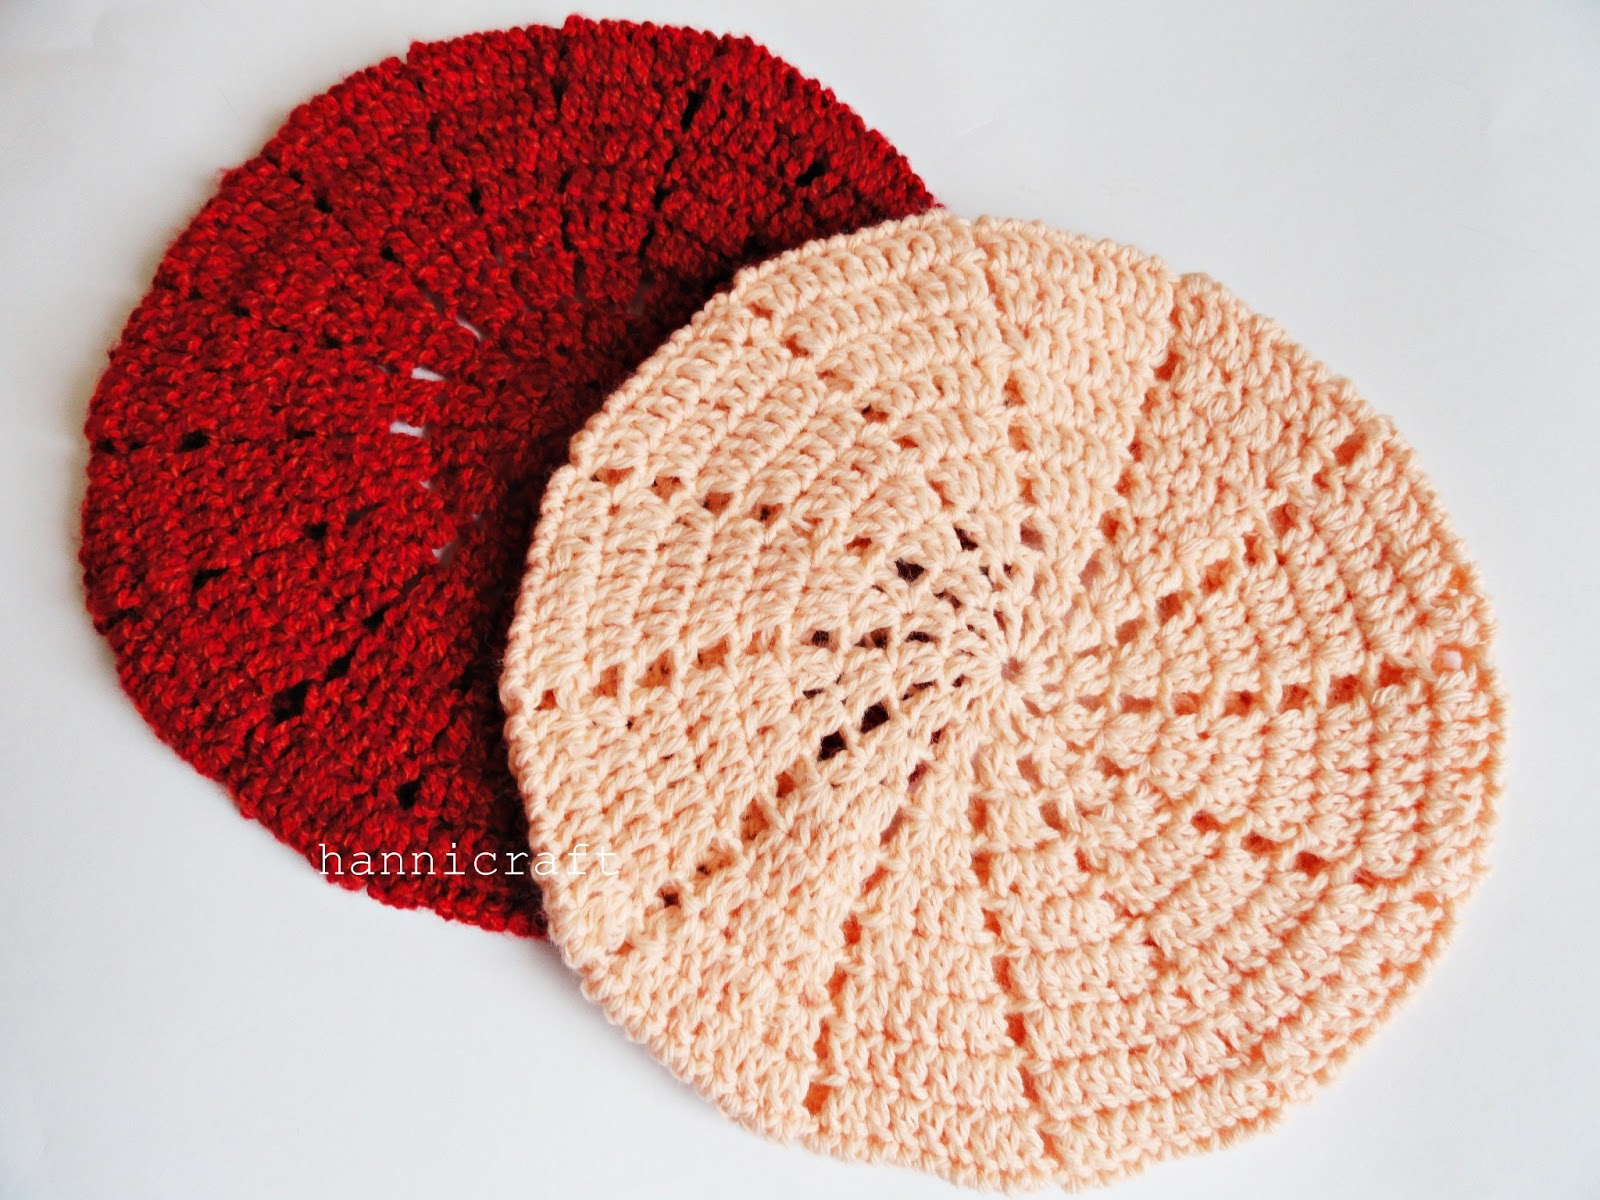 Crocheting Easy Patterns : Here is the newly made simplier version of this beret. This time in ...